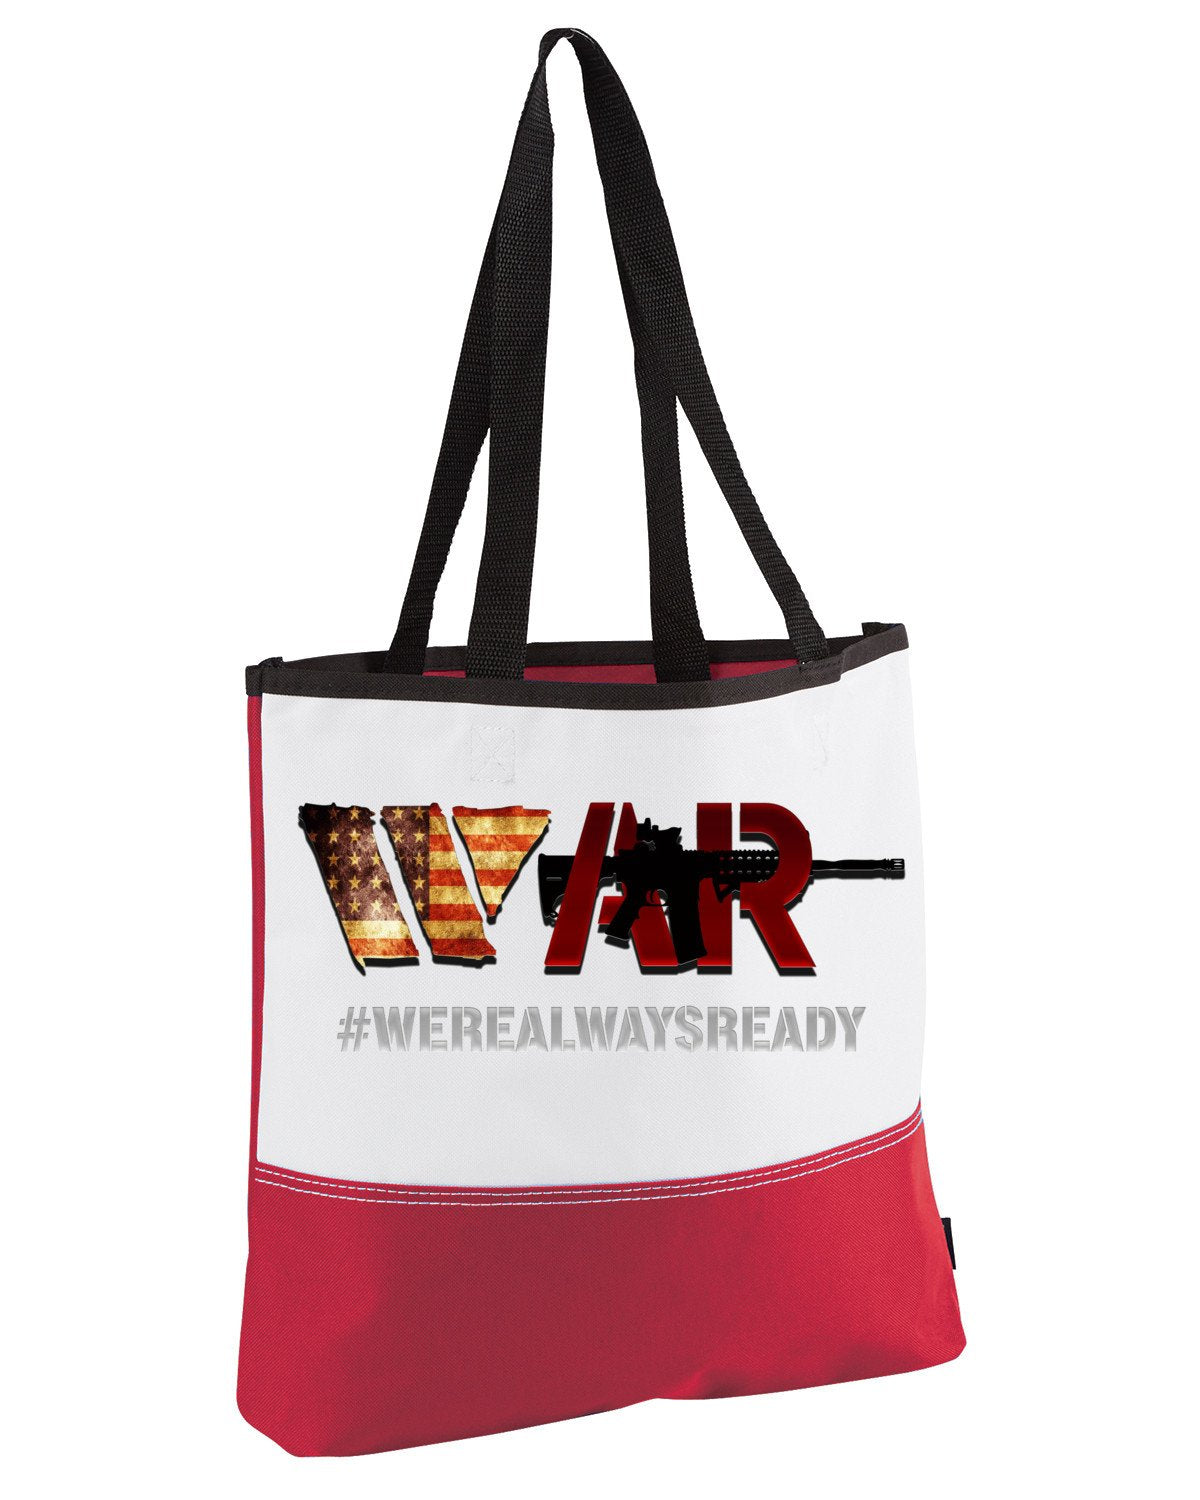 War Tote bag - Peachy Brass